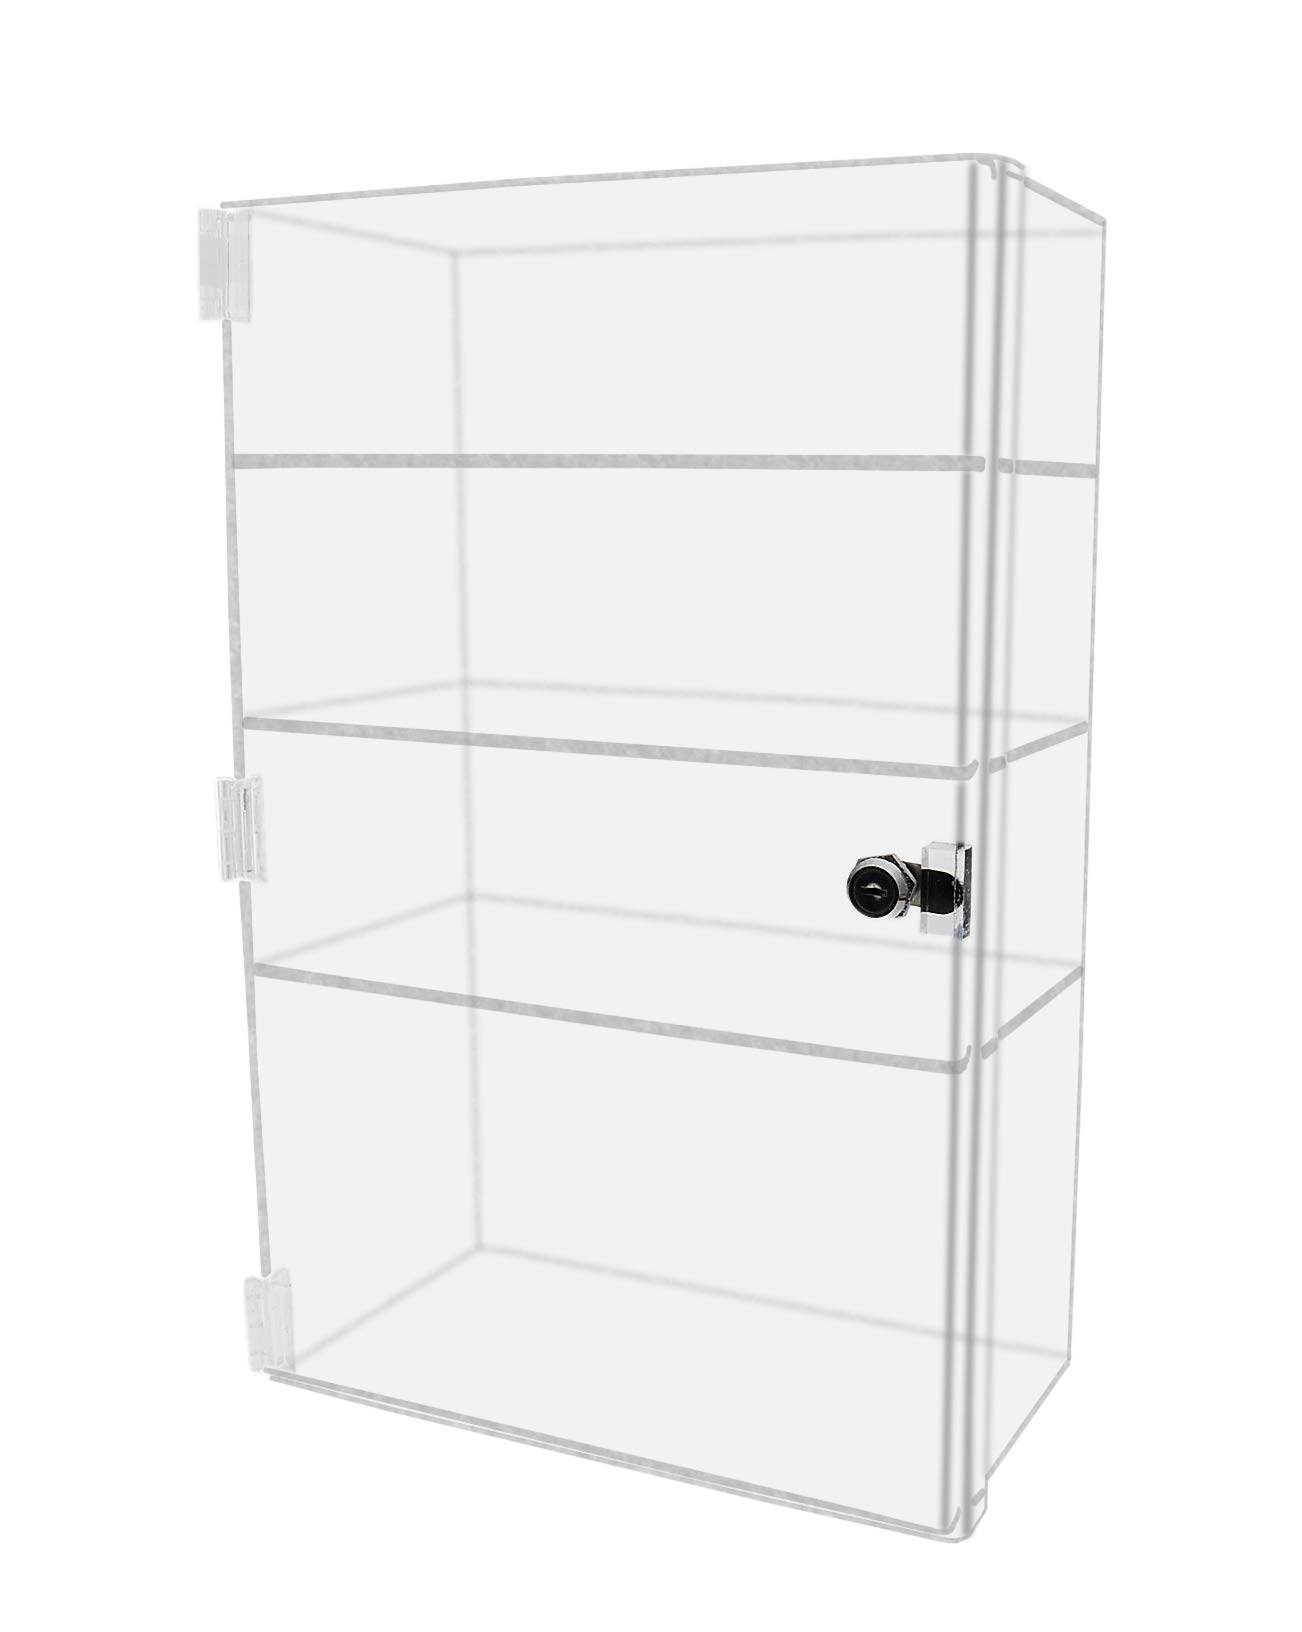 Marketing Holders Security Locking Case Bakery Pastry Cabinet Display with Lock and 2 Keys Acrylic Jewelry Show Case Stand 4 Shelf Cabinet 12''w x 6''d x 19''h